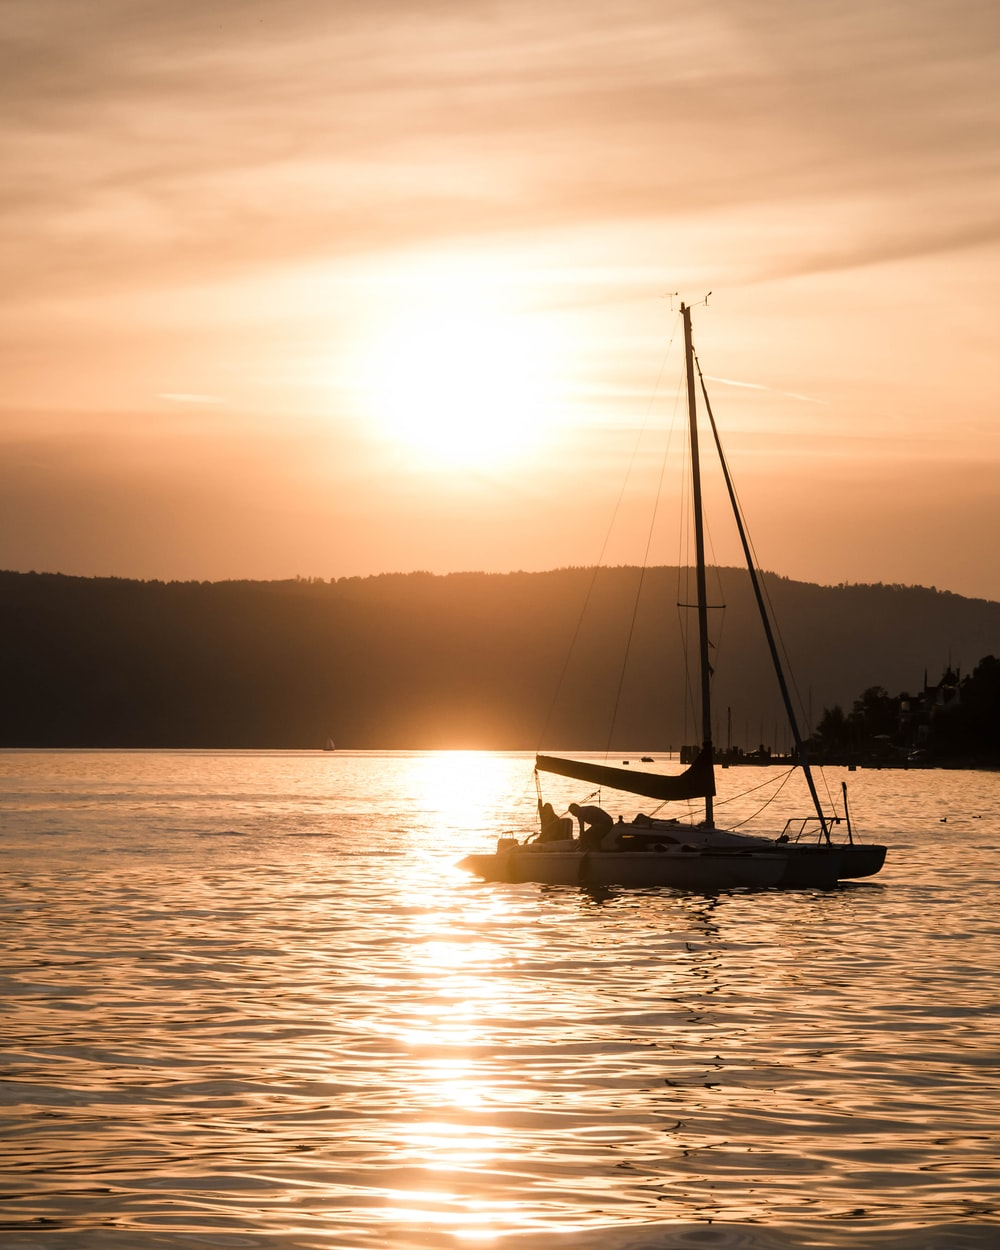 silhouette photography of boat on body of water